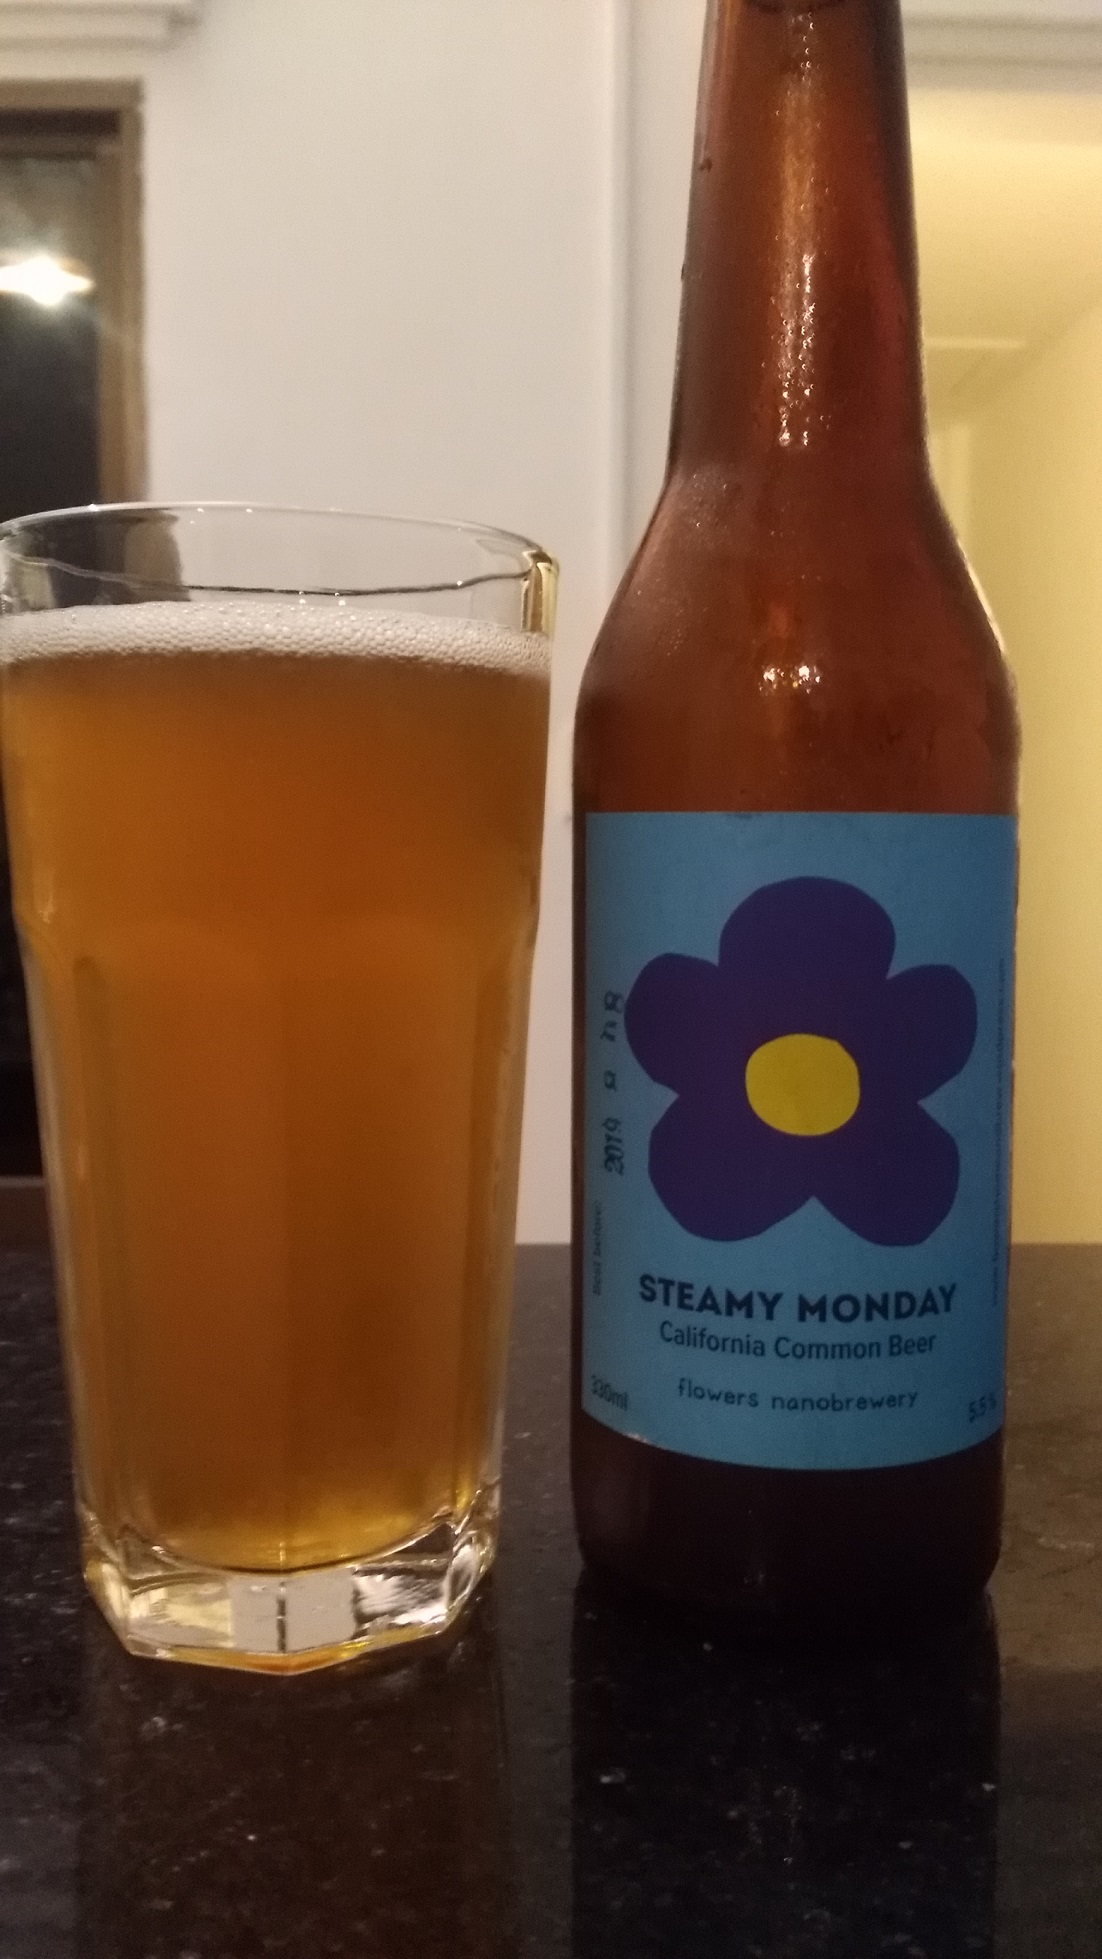 Steamy Monday - California Common Beer - Flowers Nanobrewery